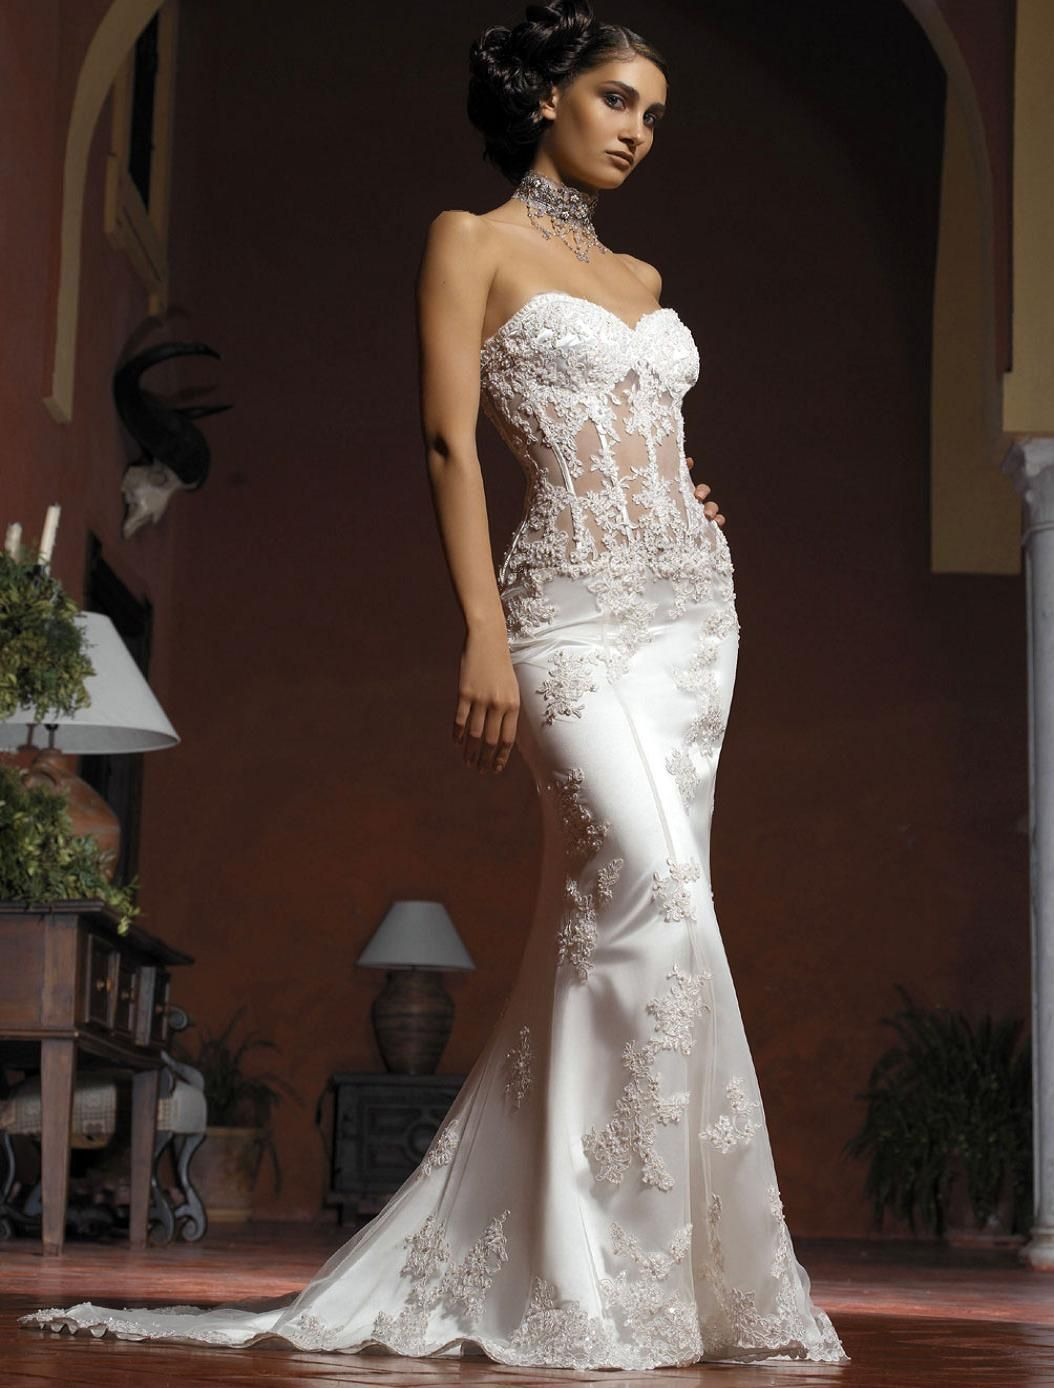 bfee5b7e0 See through Corset Wedding Dress .